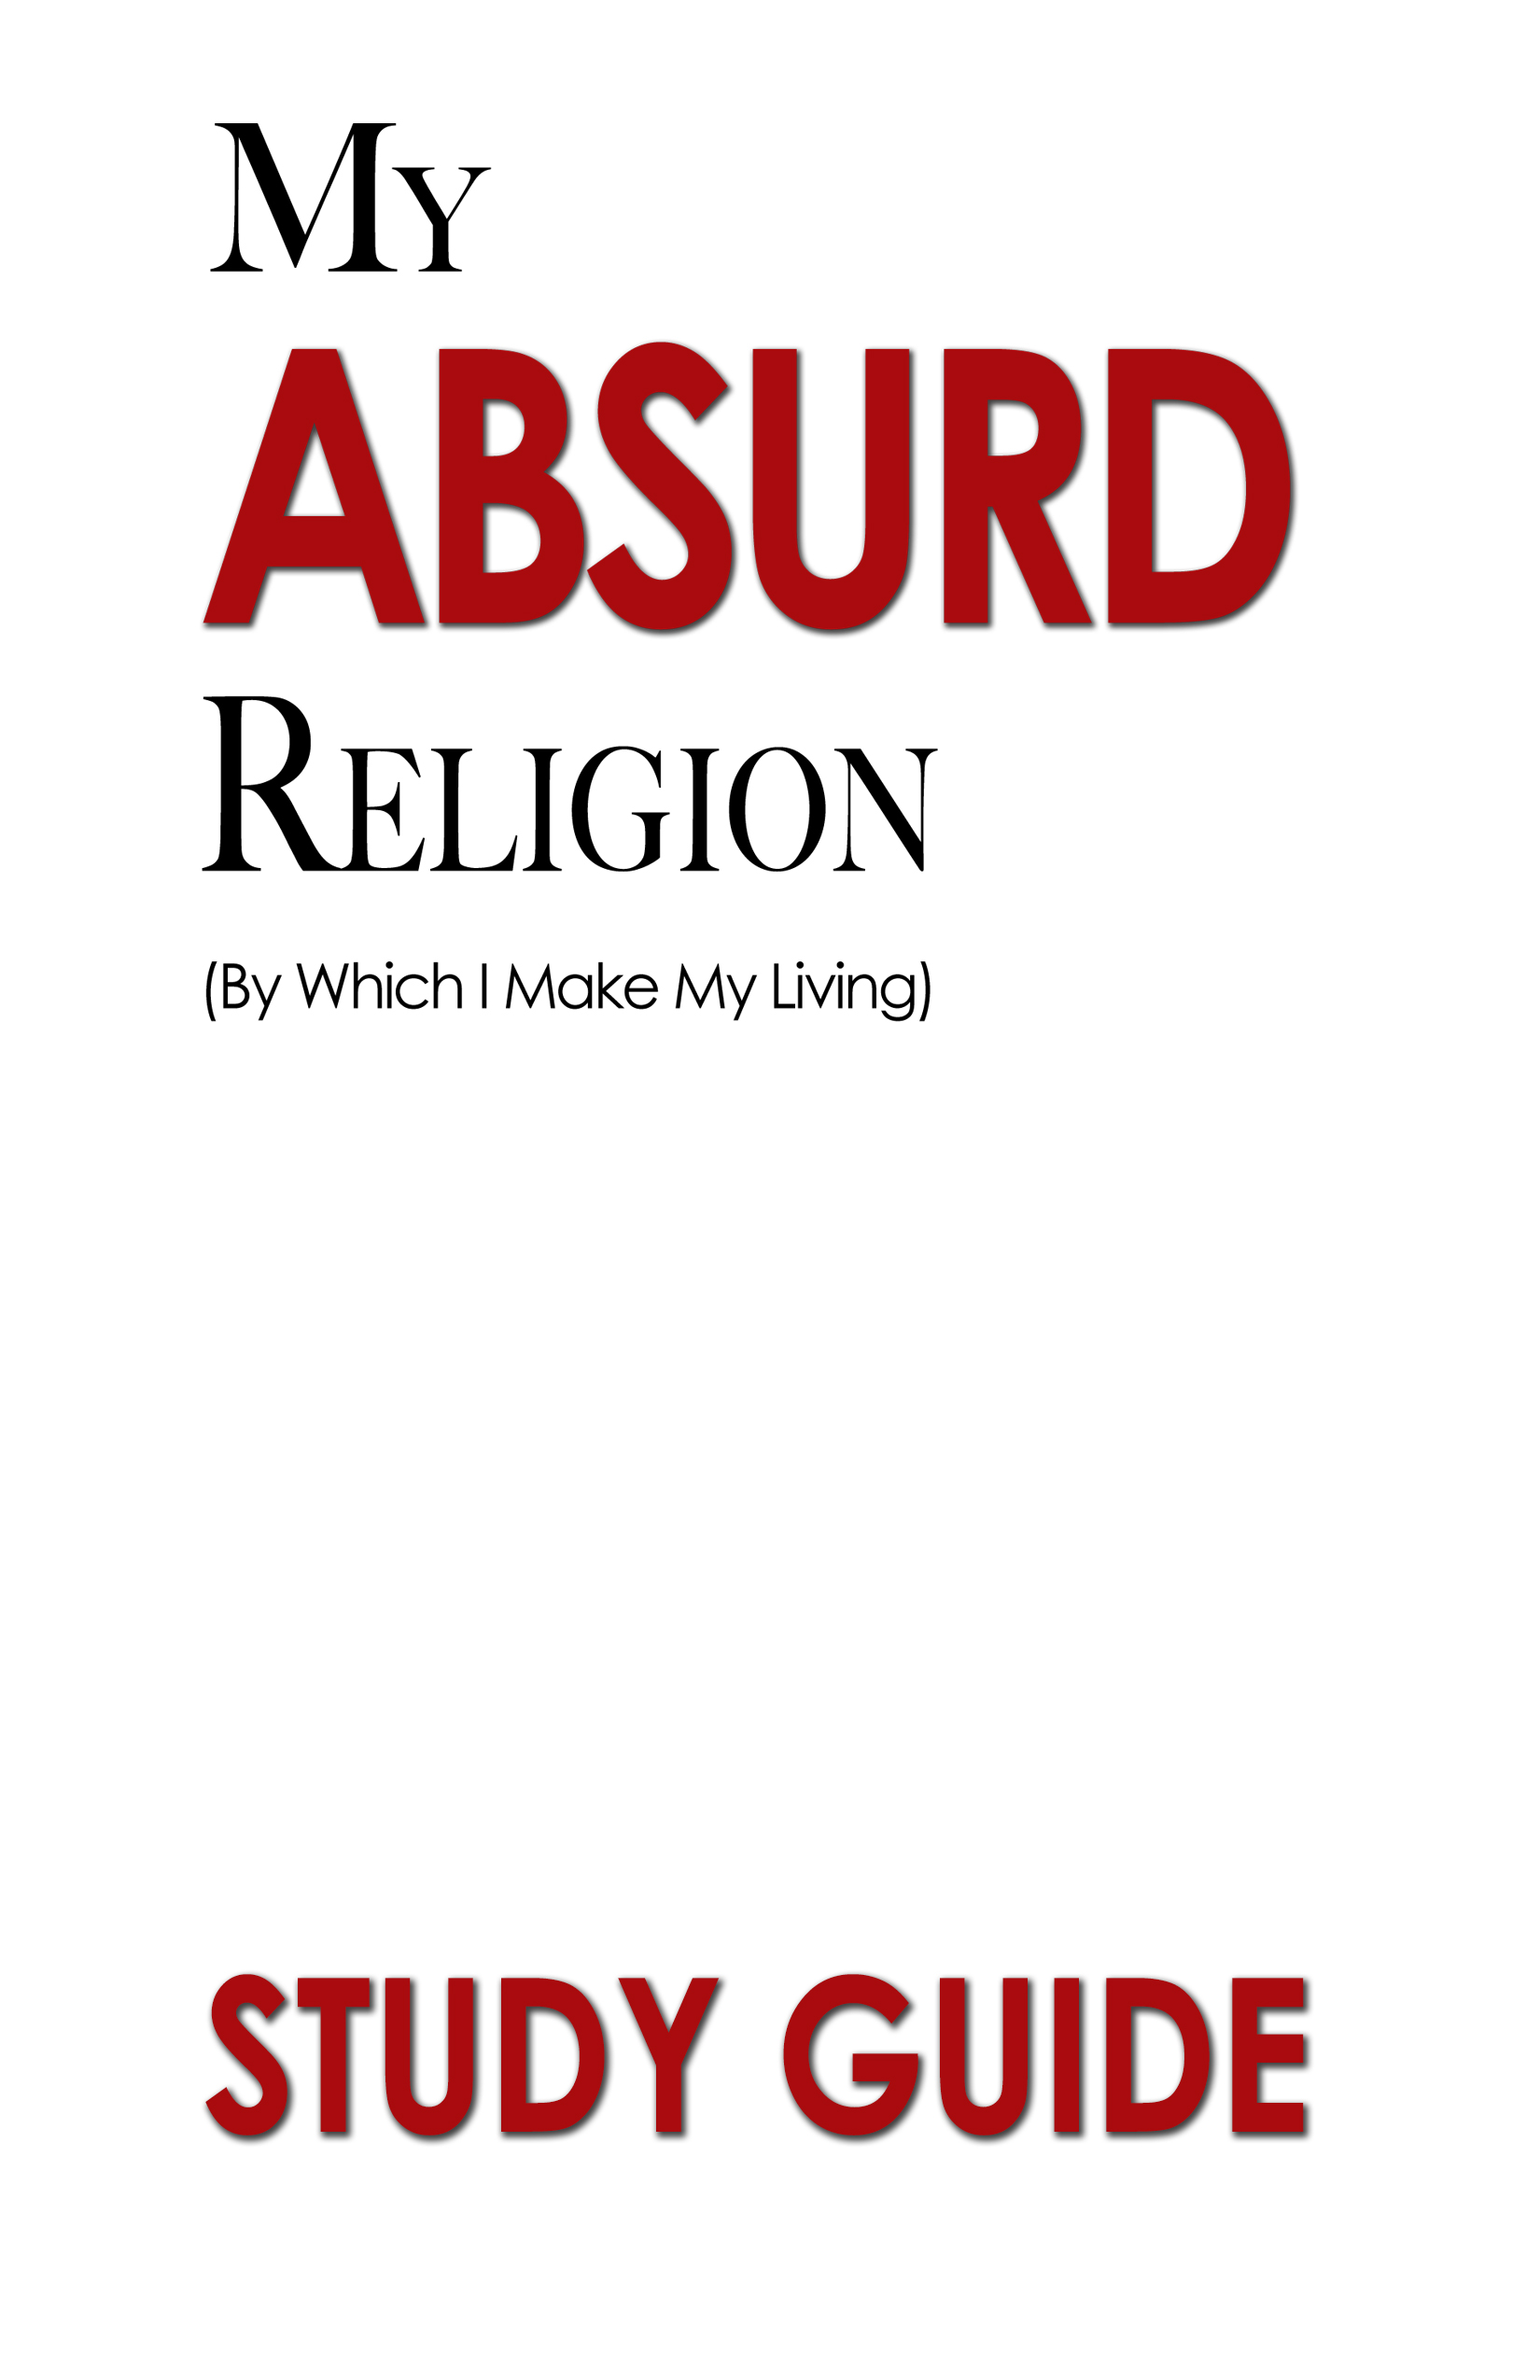 a study on religion and the The book relating religion: essays in the study of religion, jonathan z smith is published by university of chicago press.